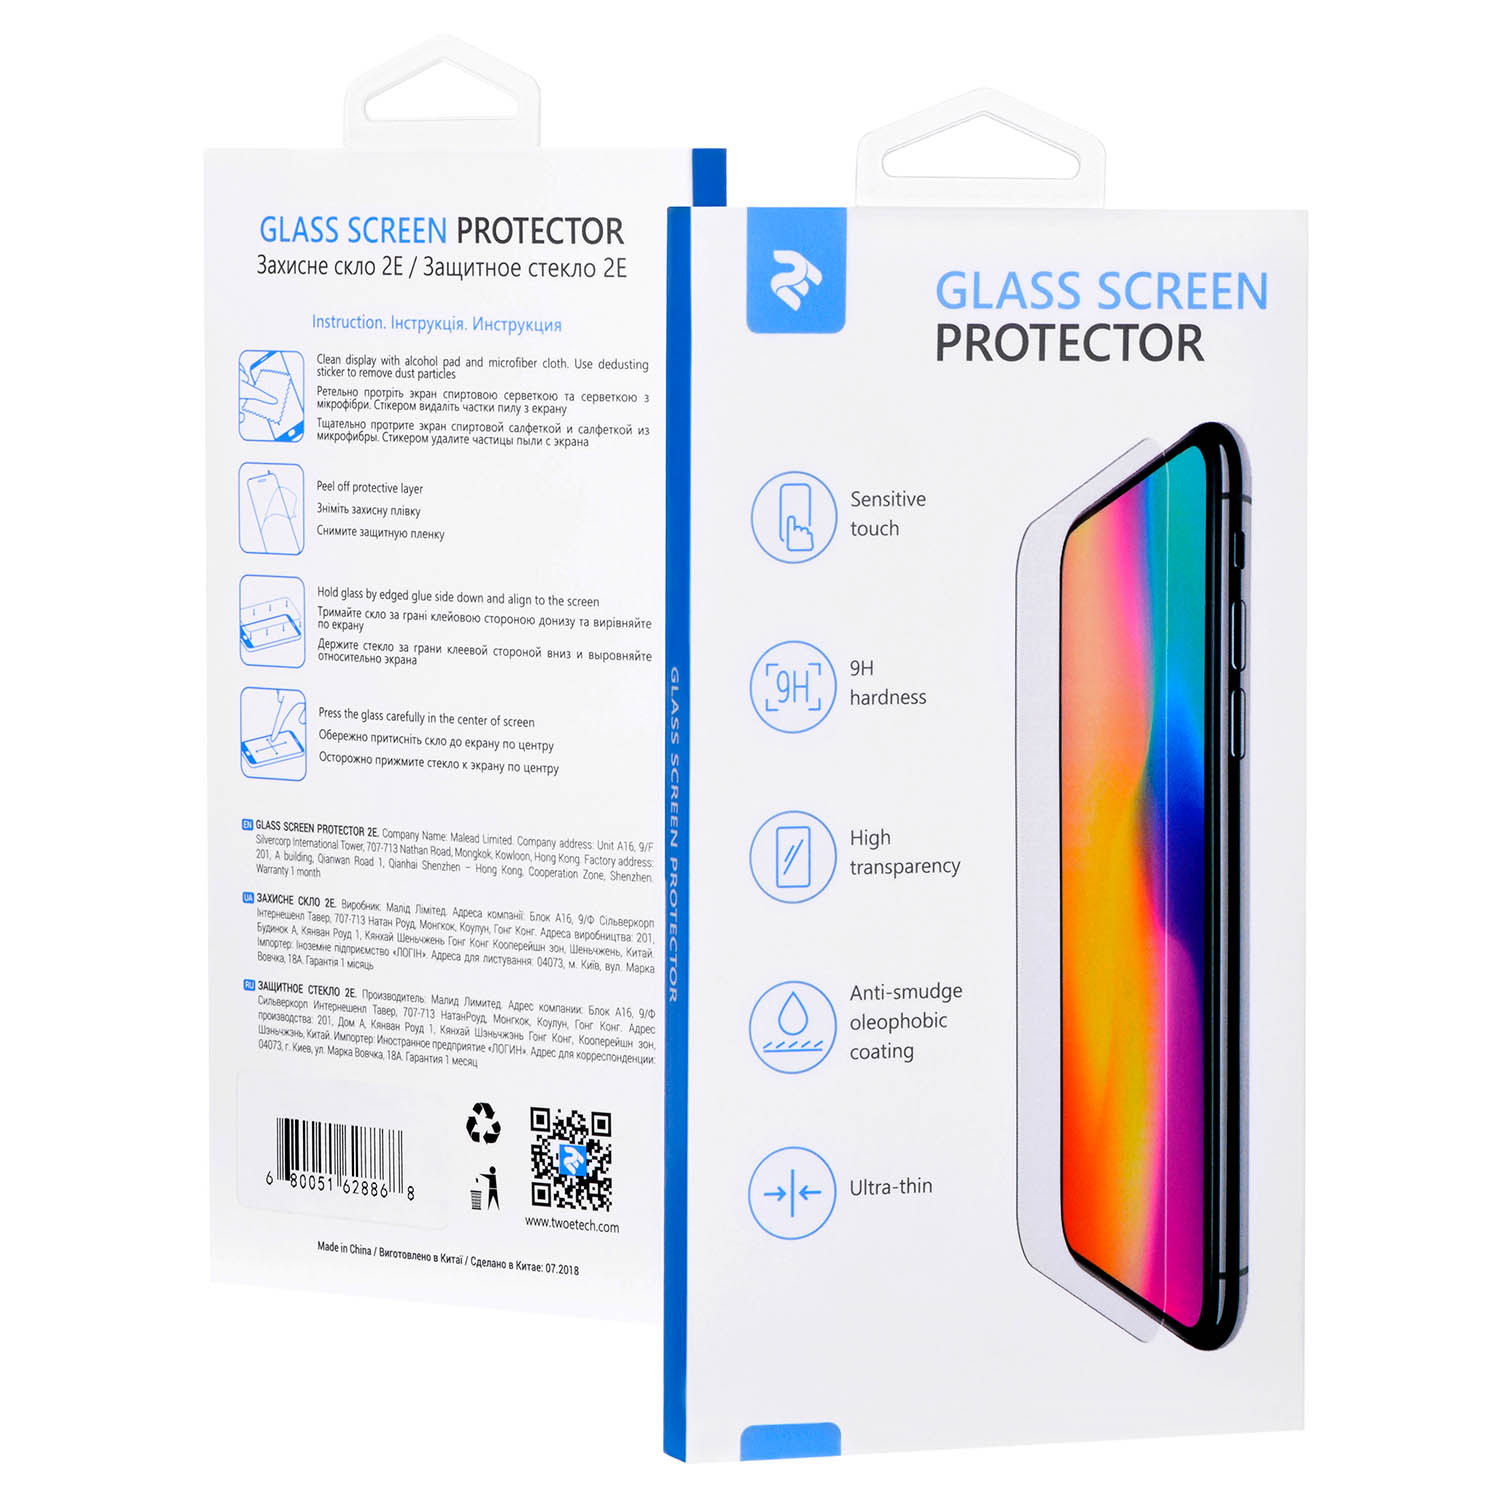 Protective Glass for Smartphones